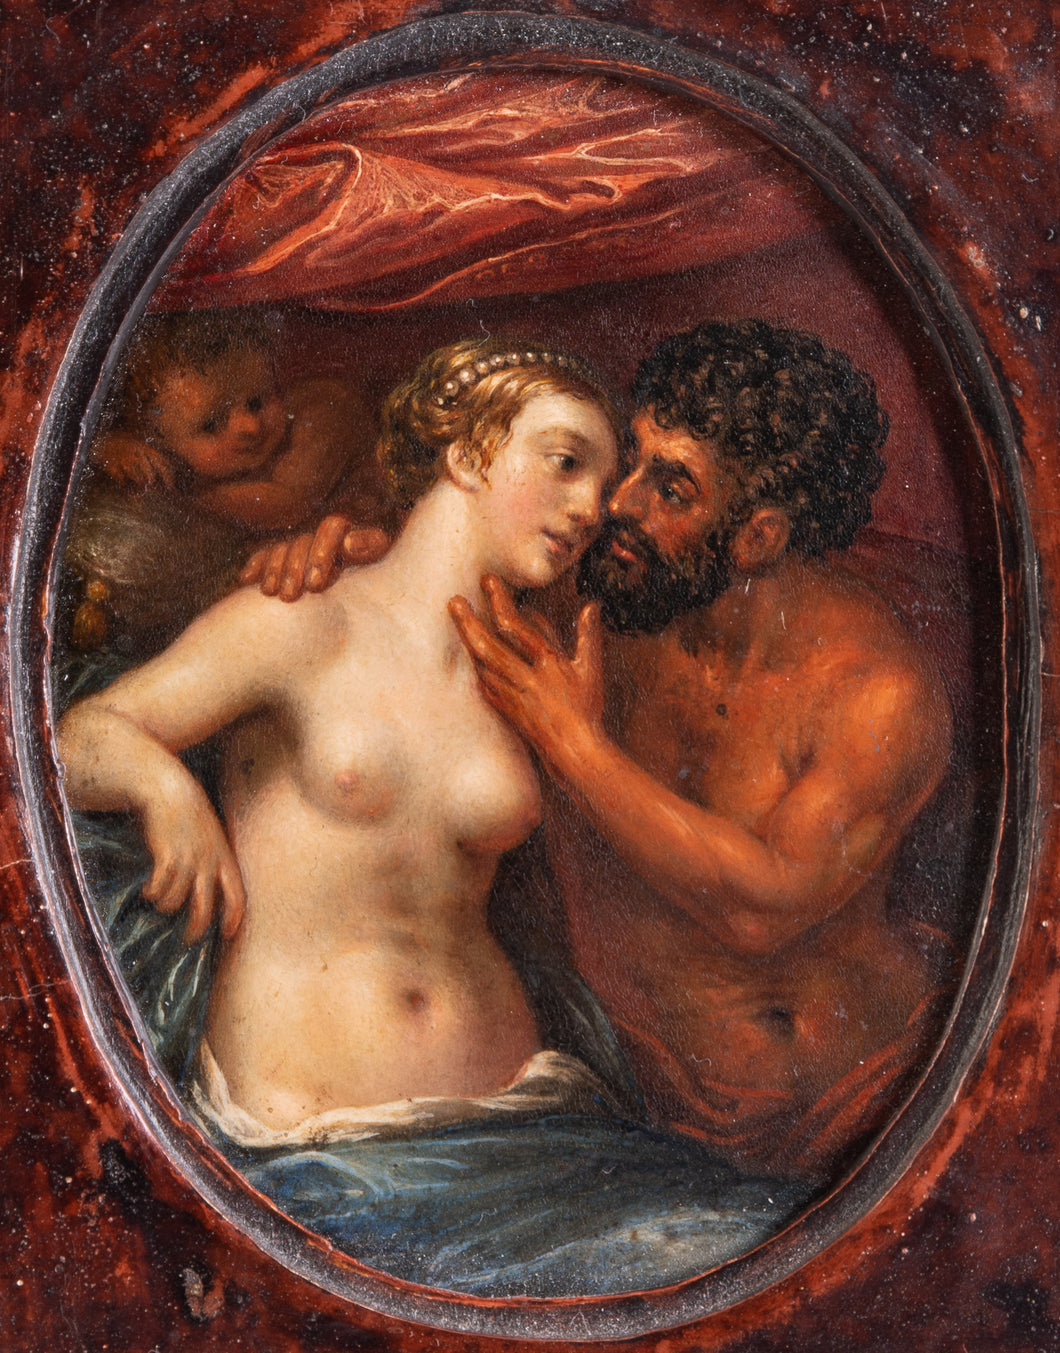 17th C, Mannerism Mythology,  Attr. to Pieter Fransz Isaacsz (Helsingør, 1568-1625), Mars and Venus in Embrace,Oil on Panel, 10,8 x 8,3 cm oval, Framed.